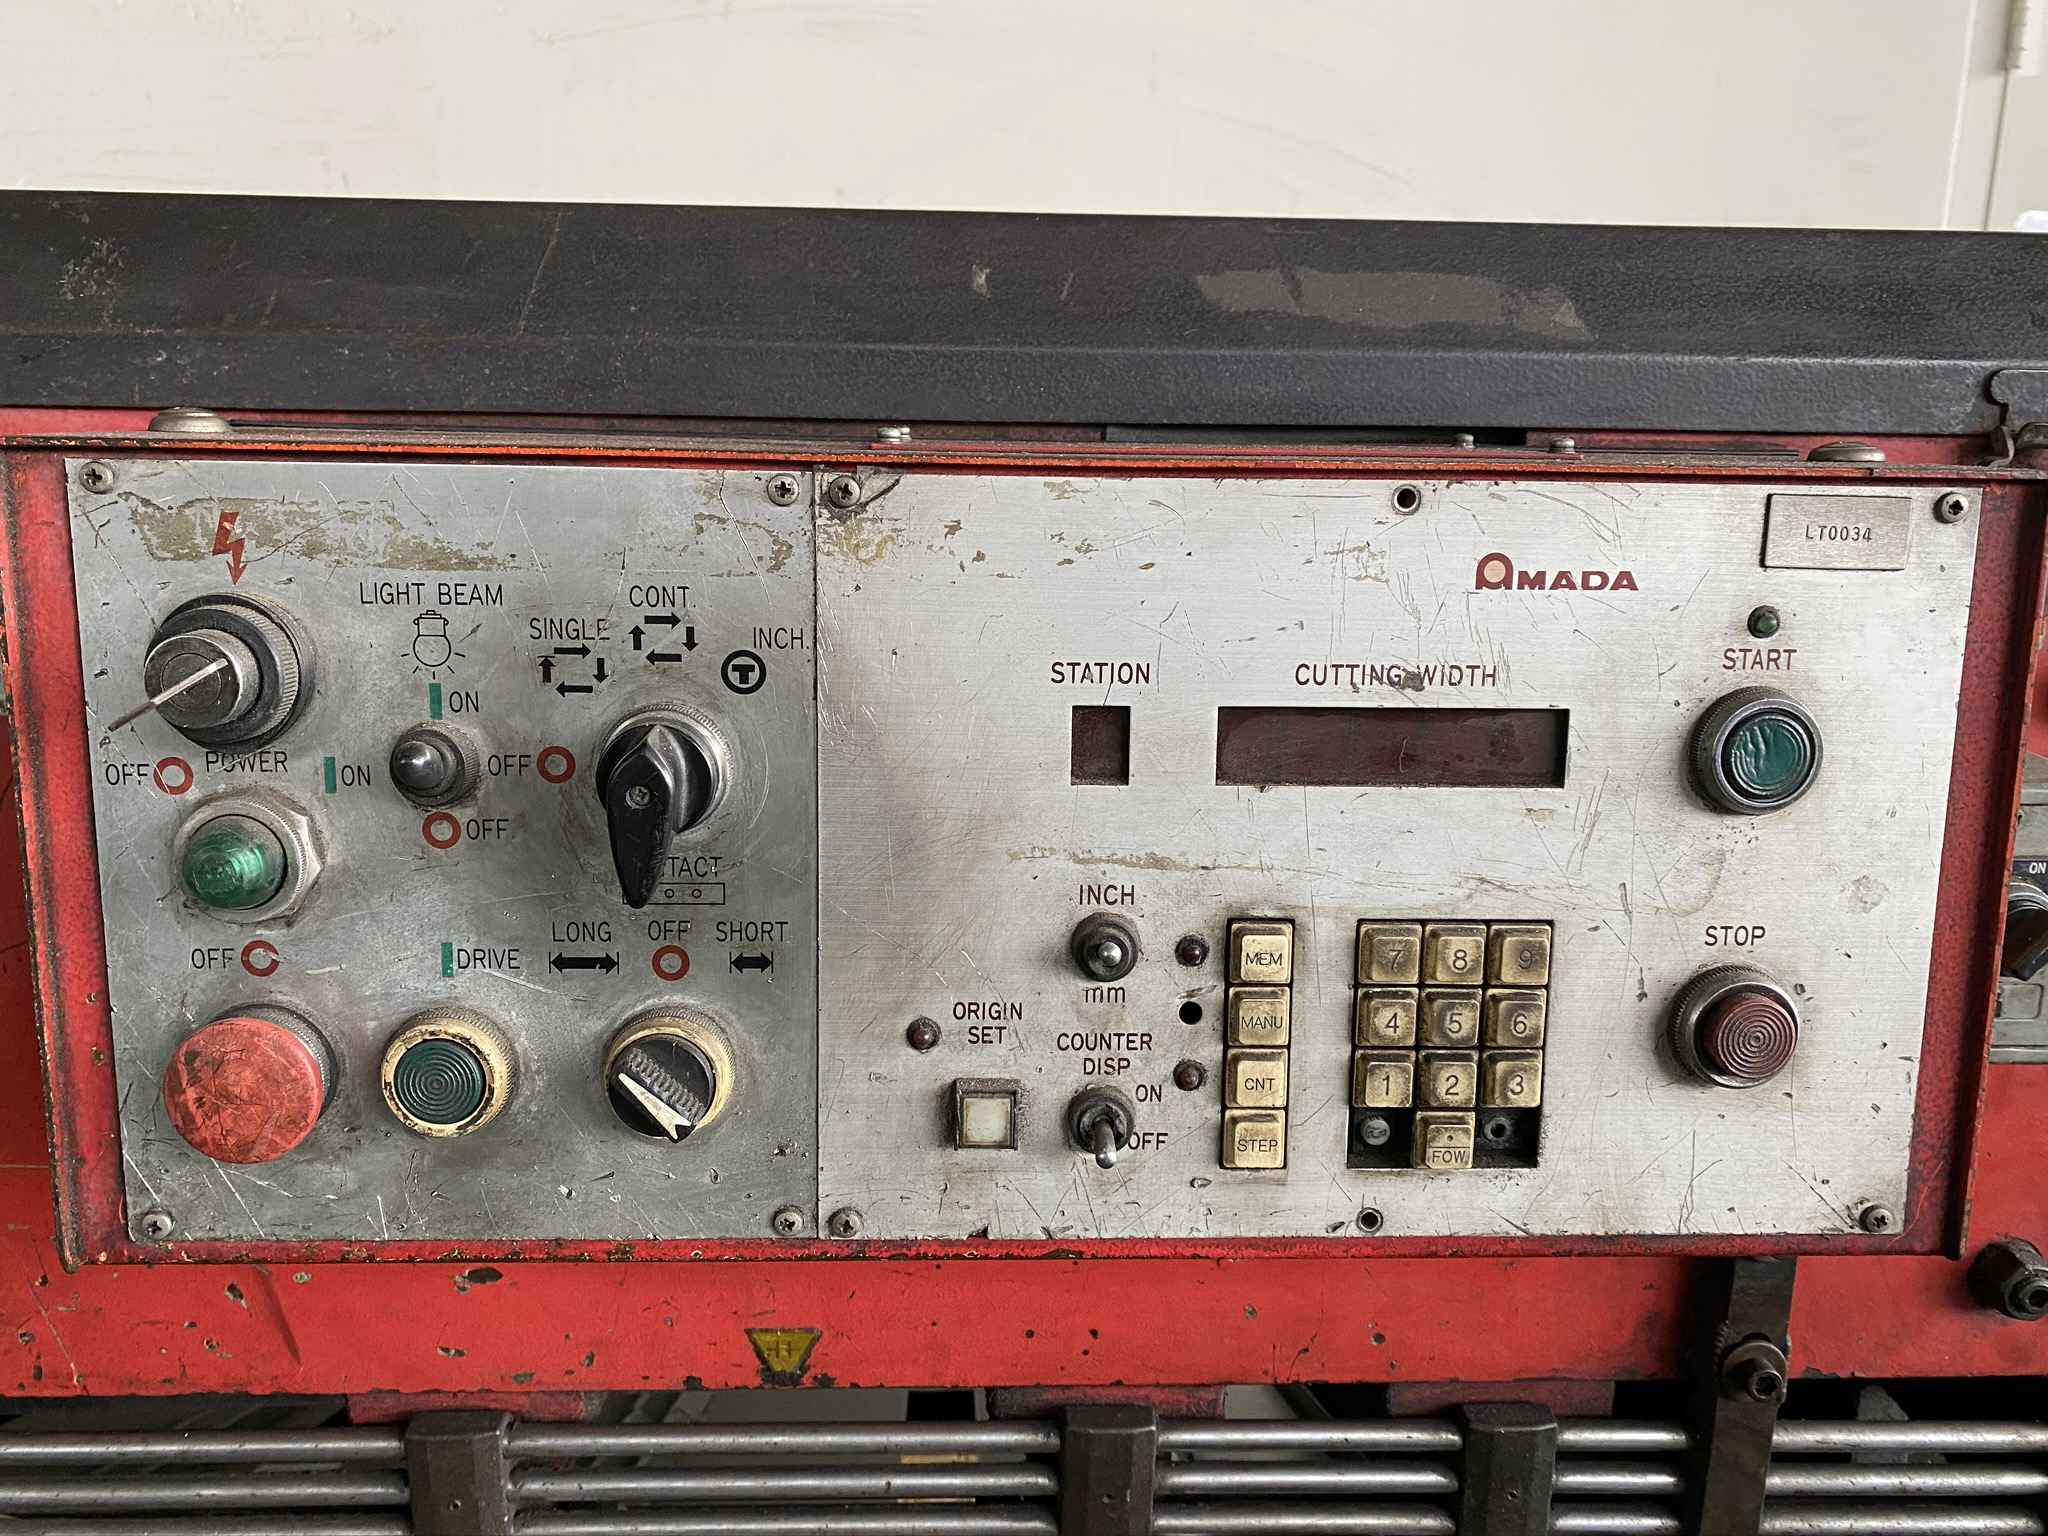 1990 AMADA M-2560 SHEAR, 2500 MM, LENGTH, 6 MM THICKNESS, MECHANICAL, SHEET SUPPORTS - Image 12 of 14